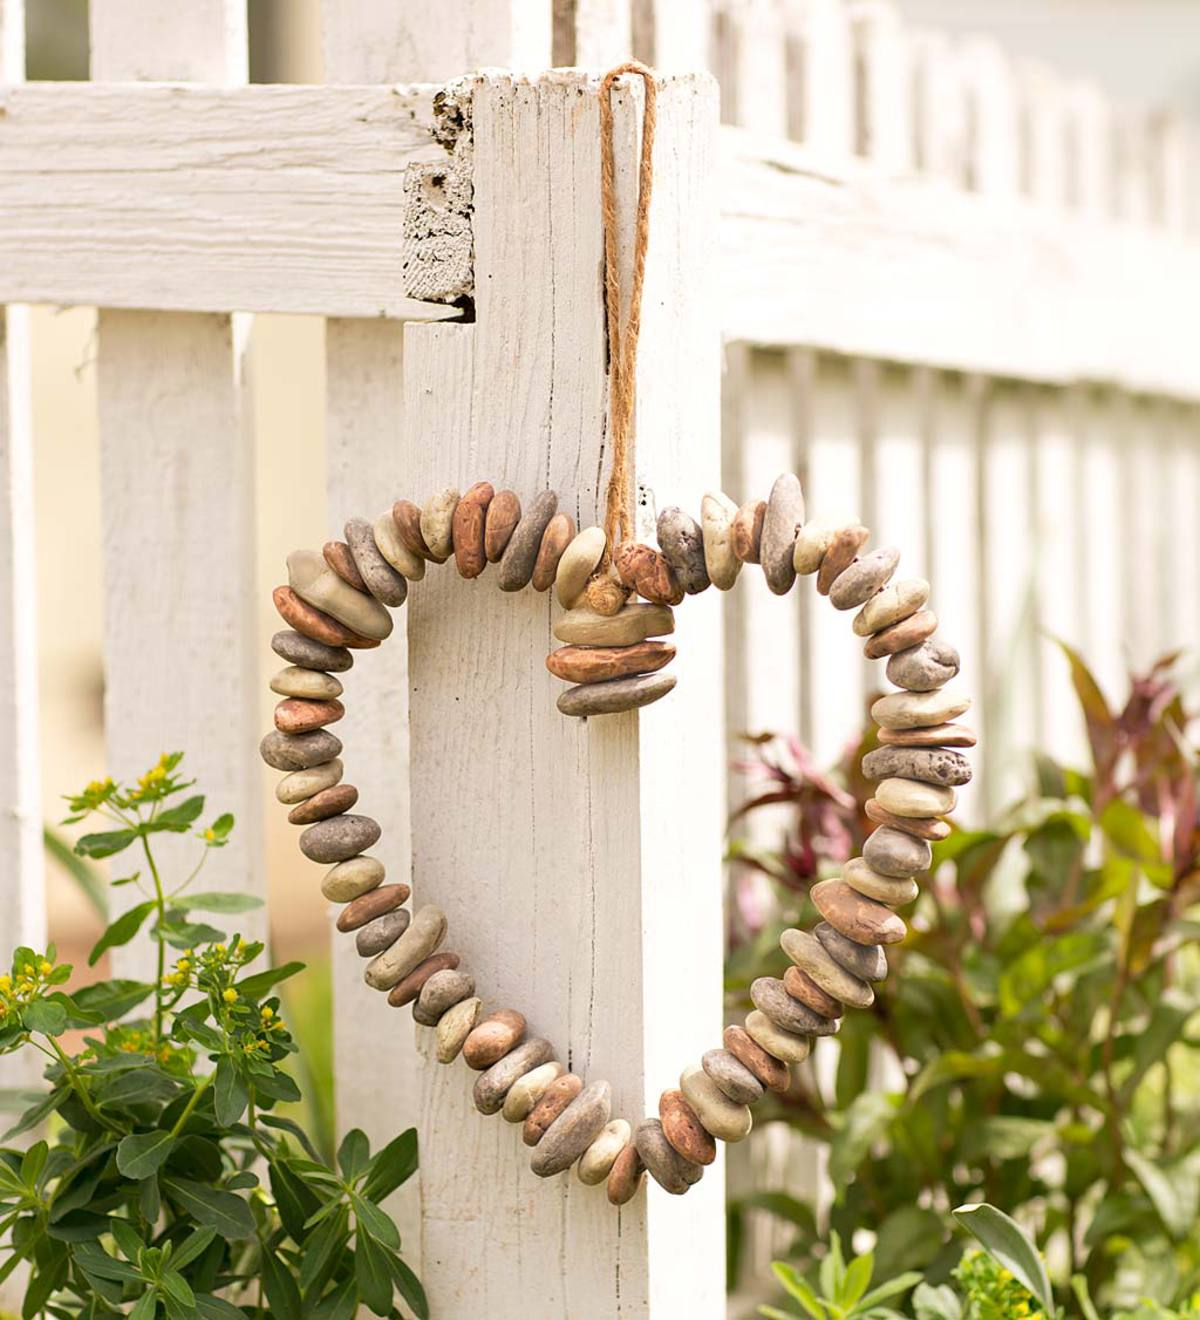 Decorative Indoor/Outdoor Heart-Shaped Wreath of Faux River Rocks